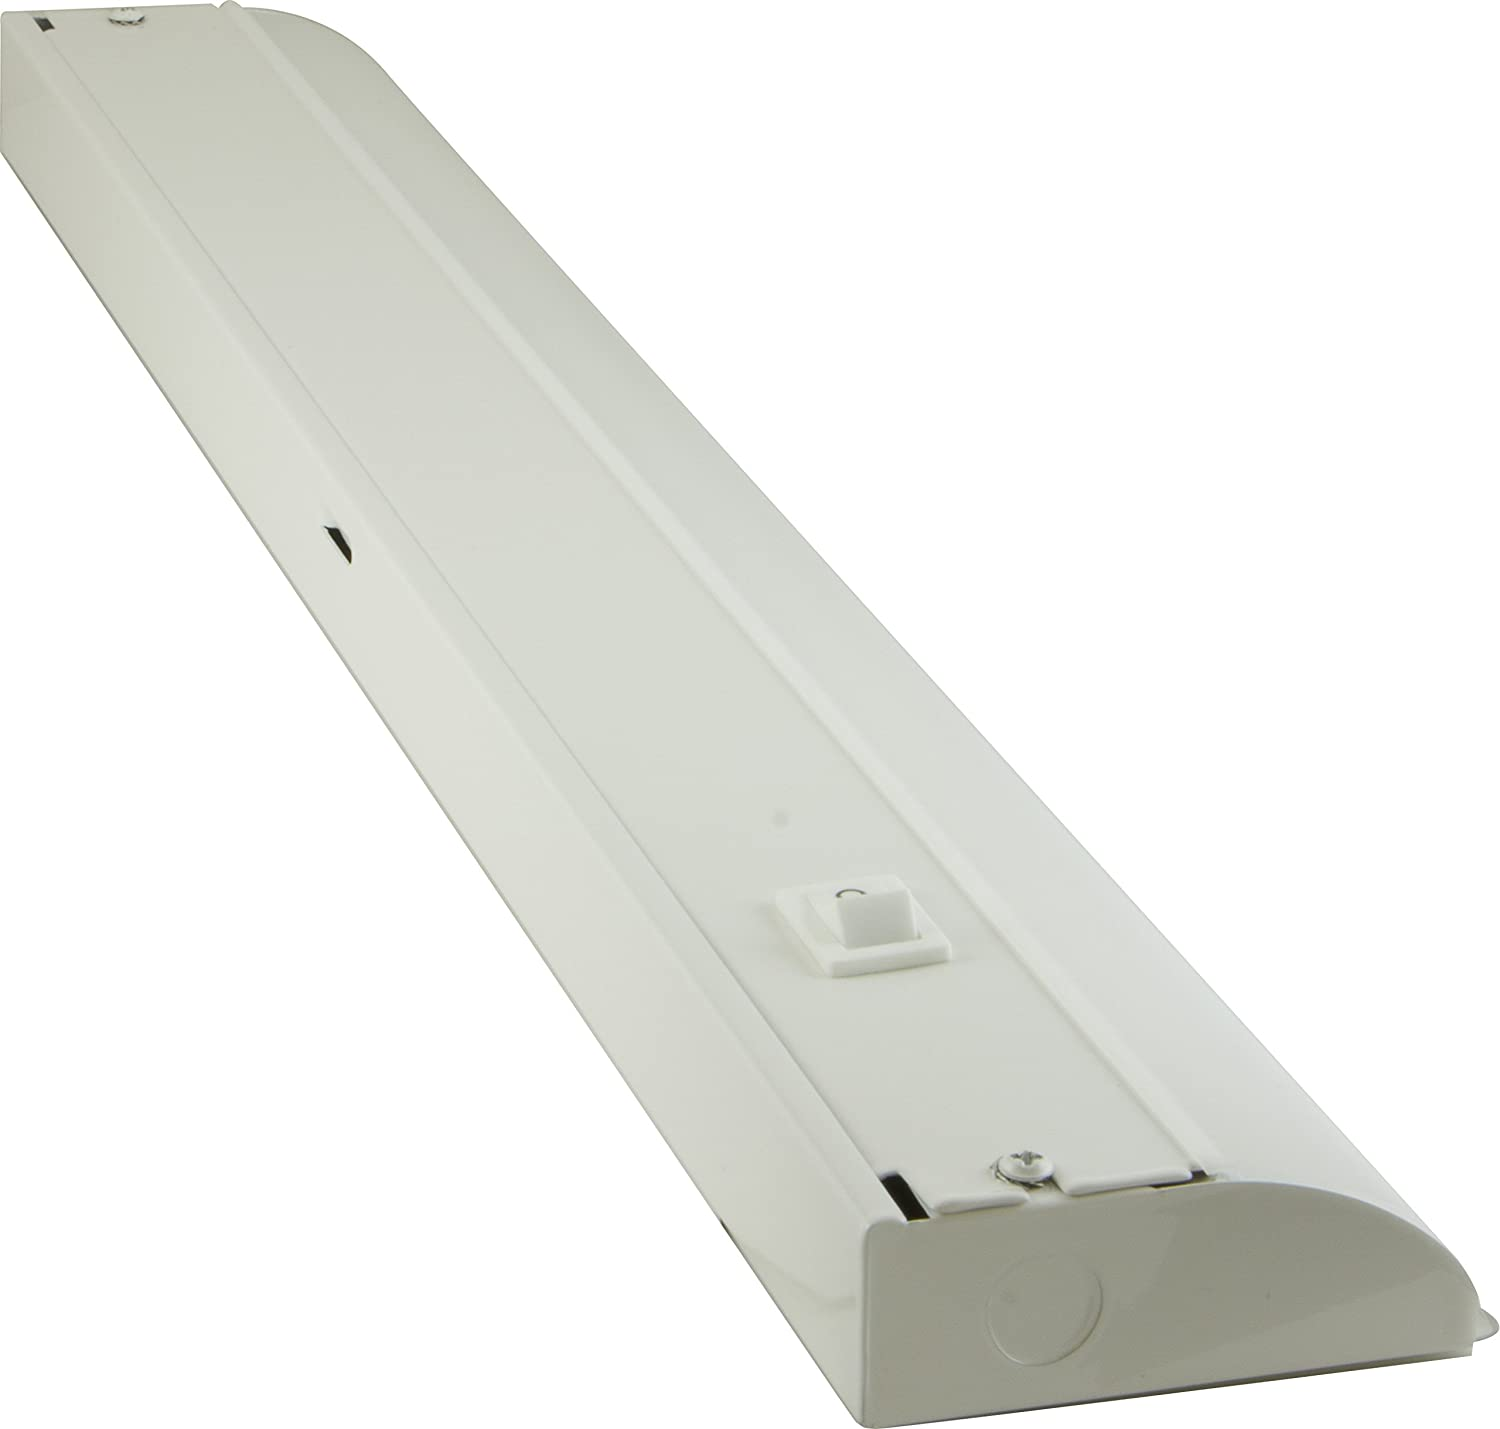 GE 36 Inch Premium Front Phase LED Under Cabinet Light Fixture, Direct Wire, In-Wall Dimmer Compatible, 3000K Bright White, Steel Housing, 1366 Lumens, 29434